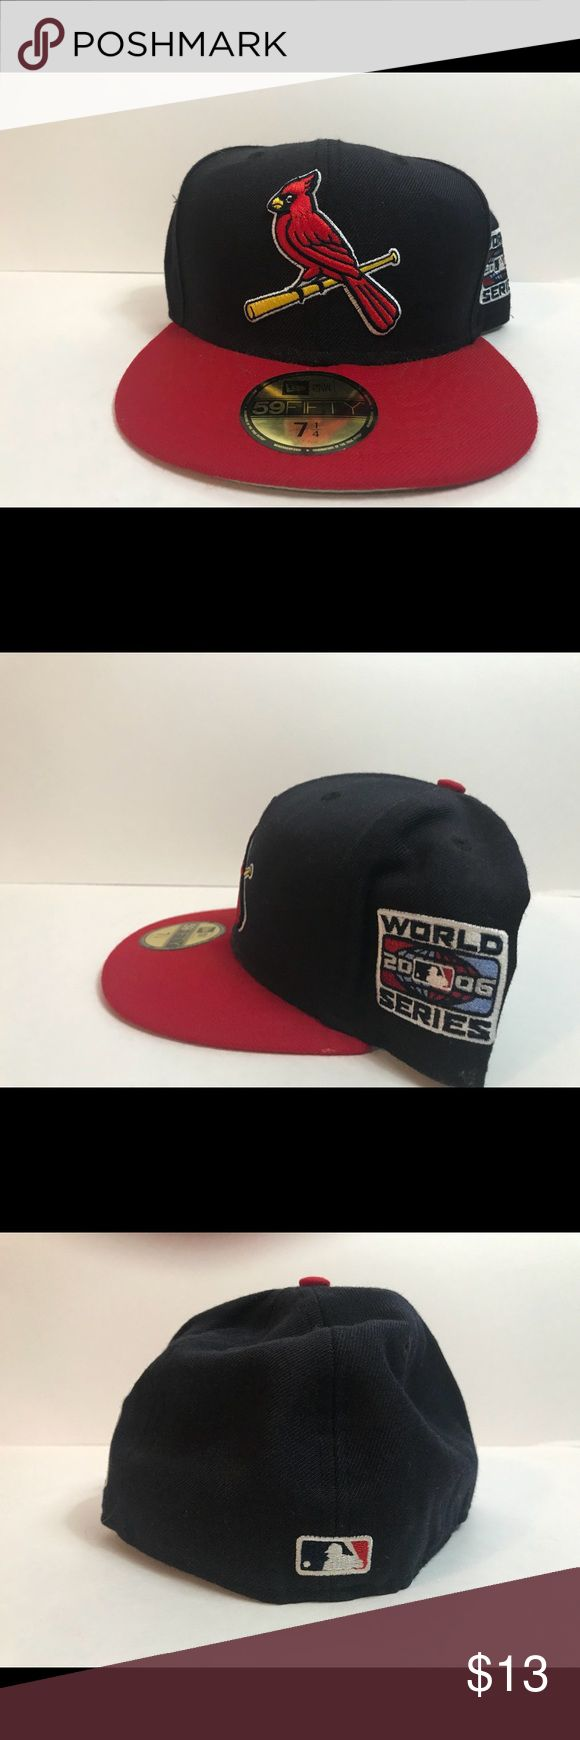 2006 World Series patch cardinals new era fitted STL cardinals World Series patch 2006 Navy blue and red Worn  100% authentic  New era size 7-1/4 New Era Accessories Hats